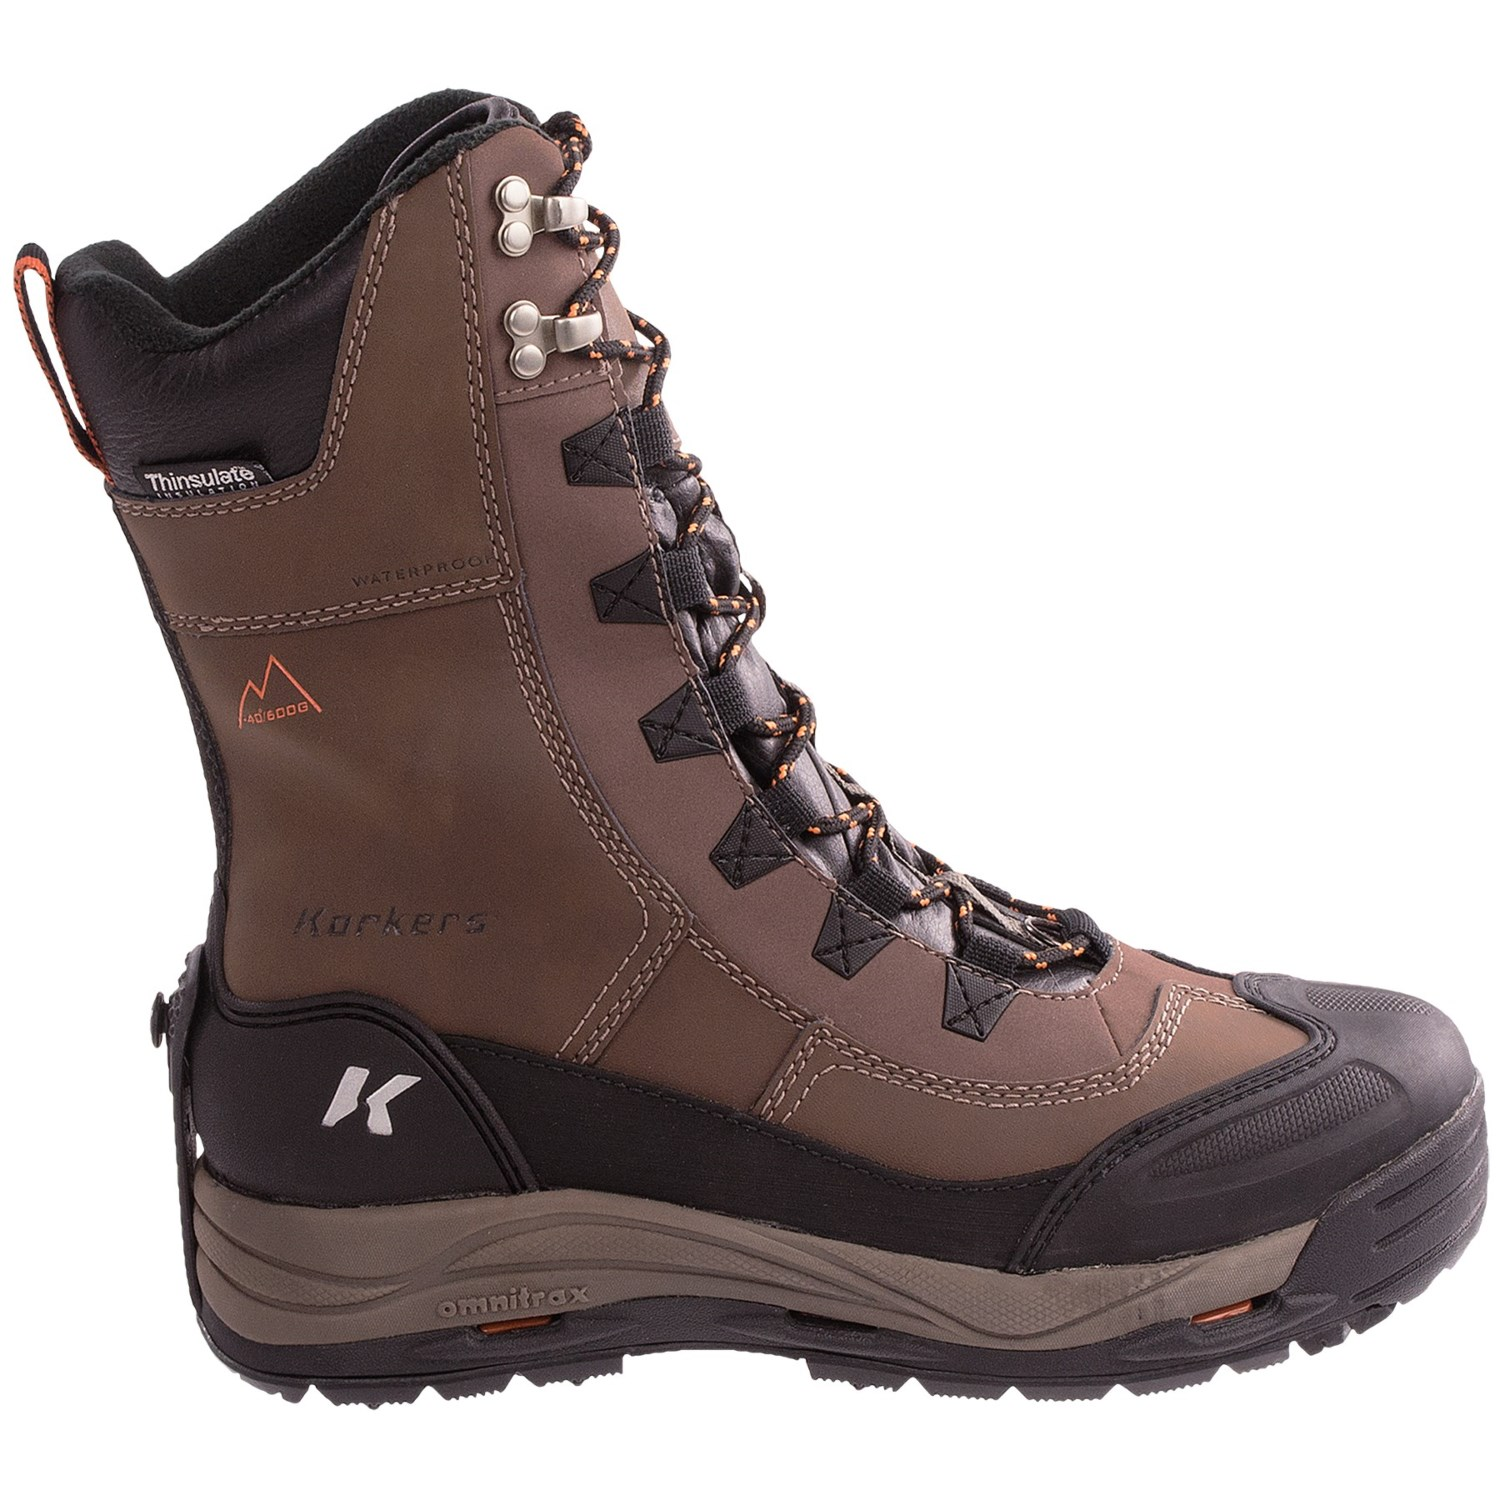 Mens Waterproof Work Boots Clearance - Cr Boot